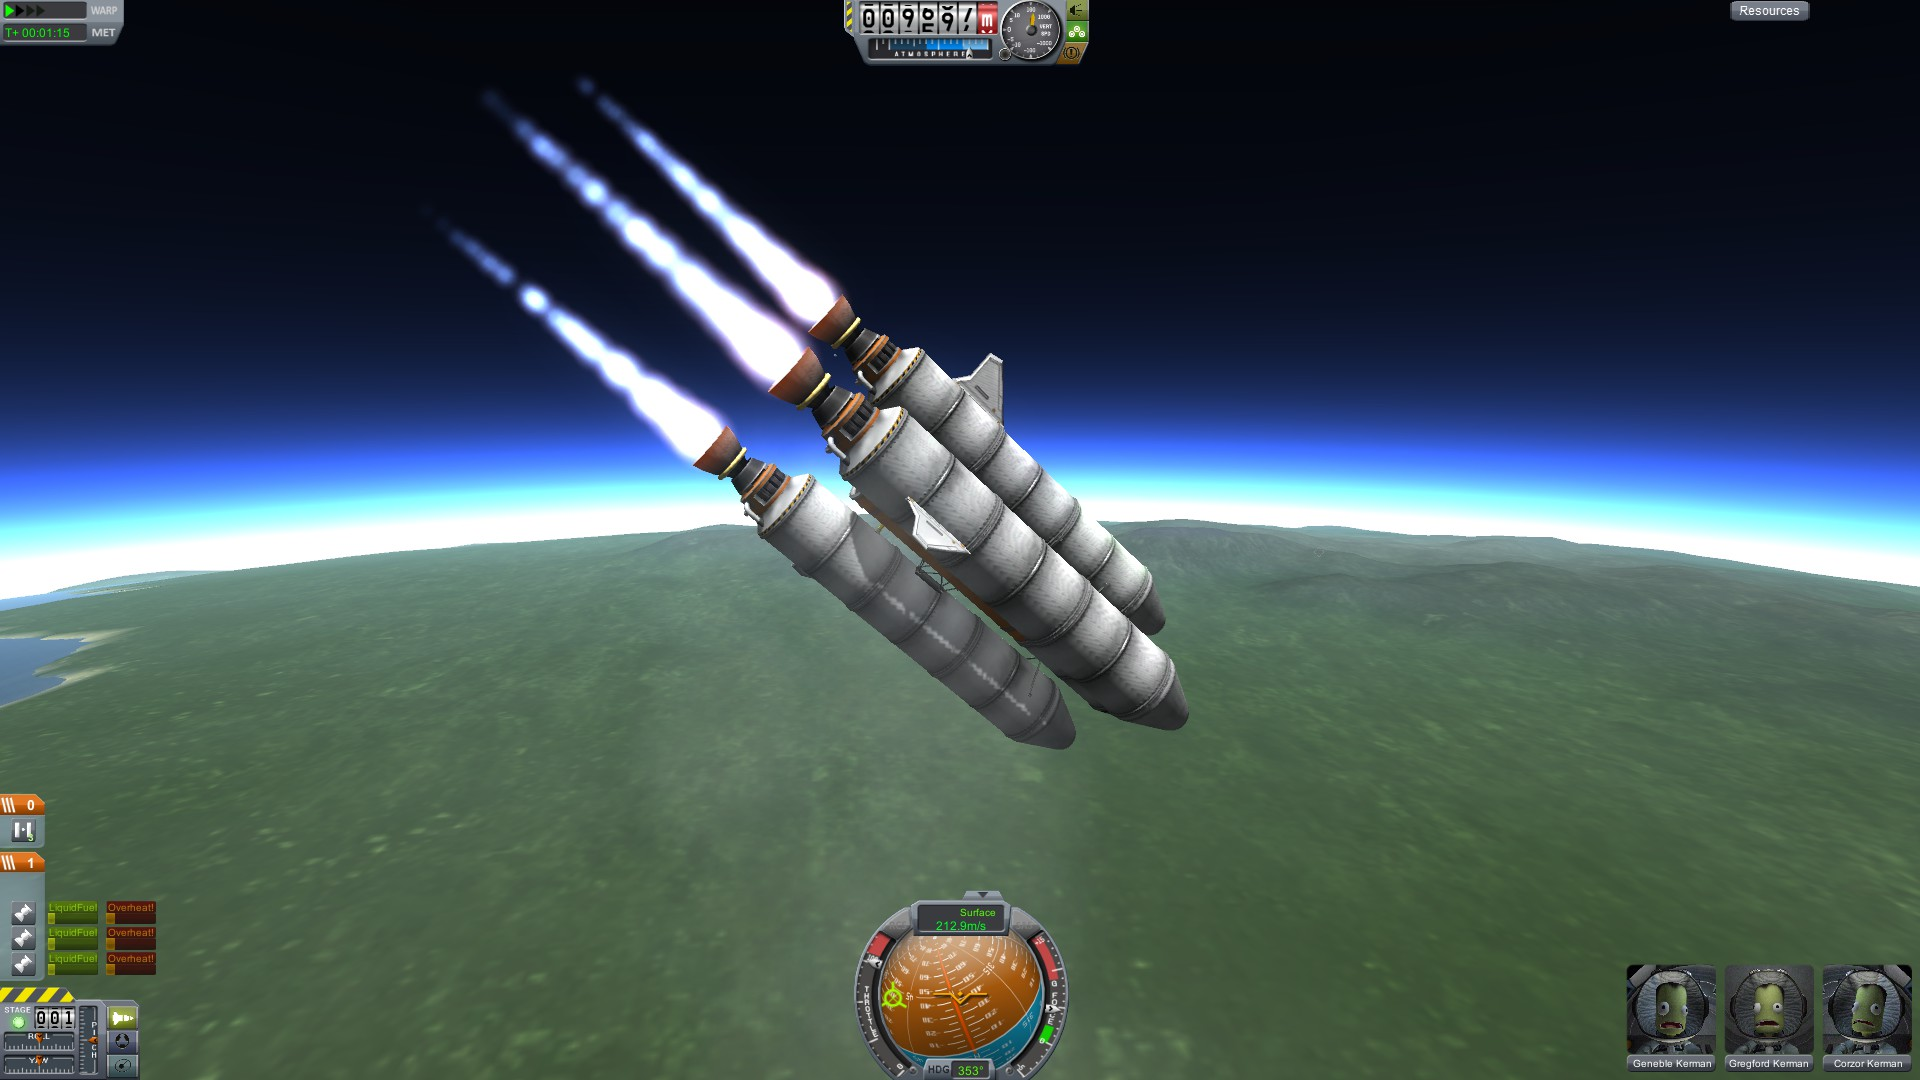 kerbal space program battlestar - photo #1